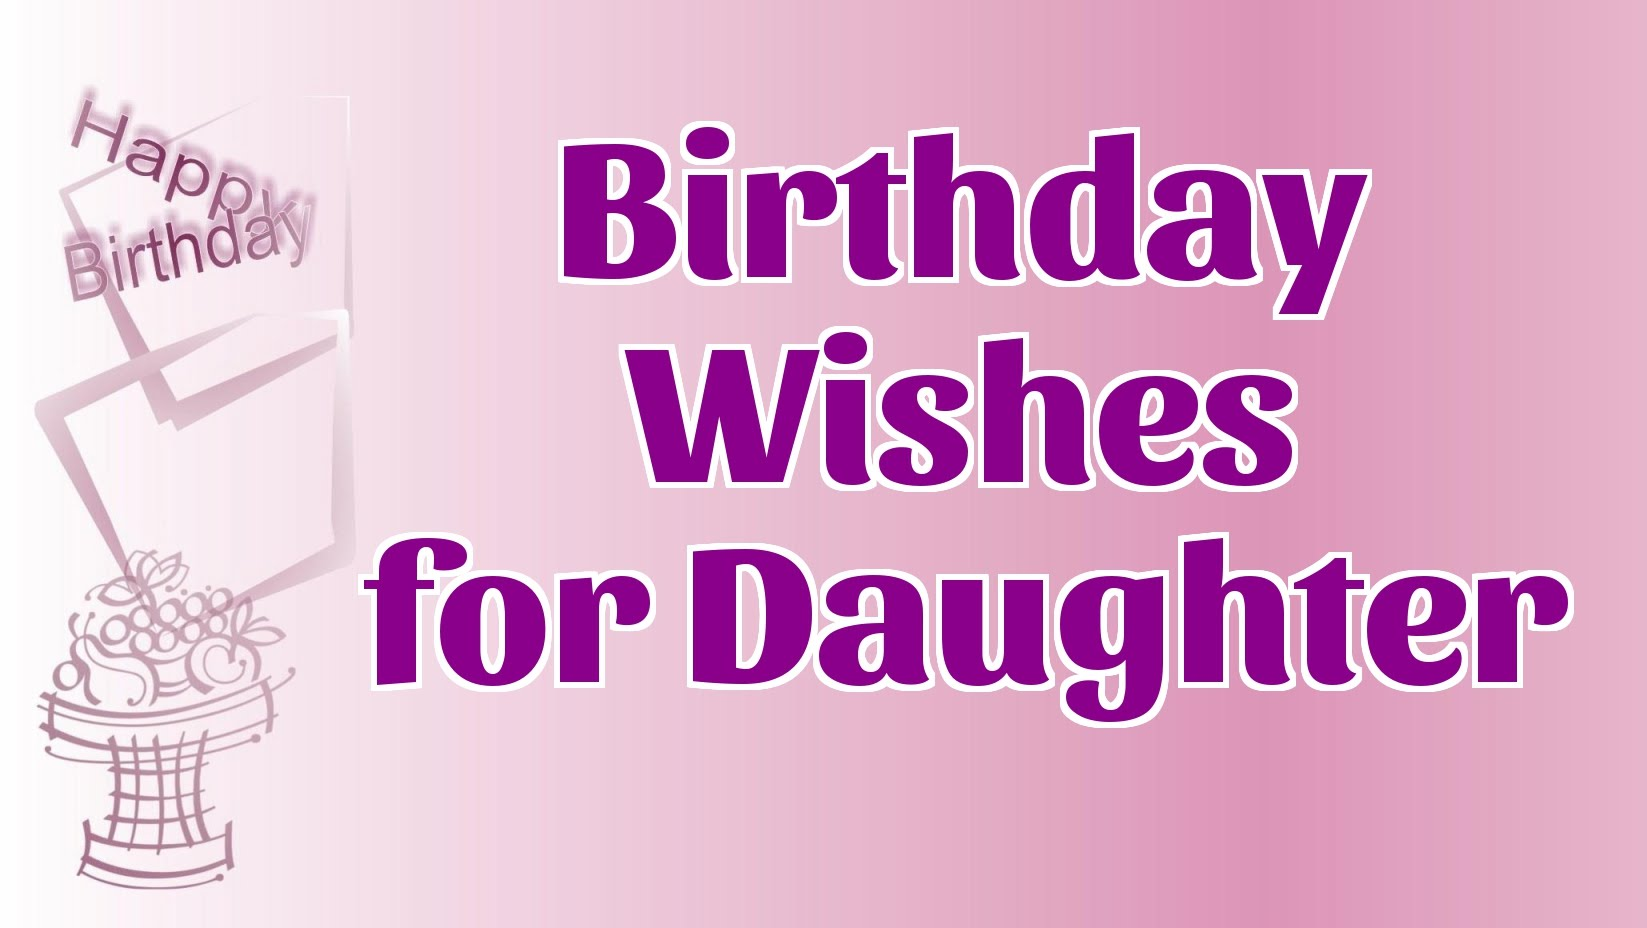 images of birthday wishes for daughter - photo #36